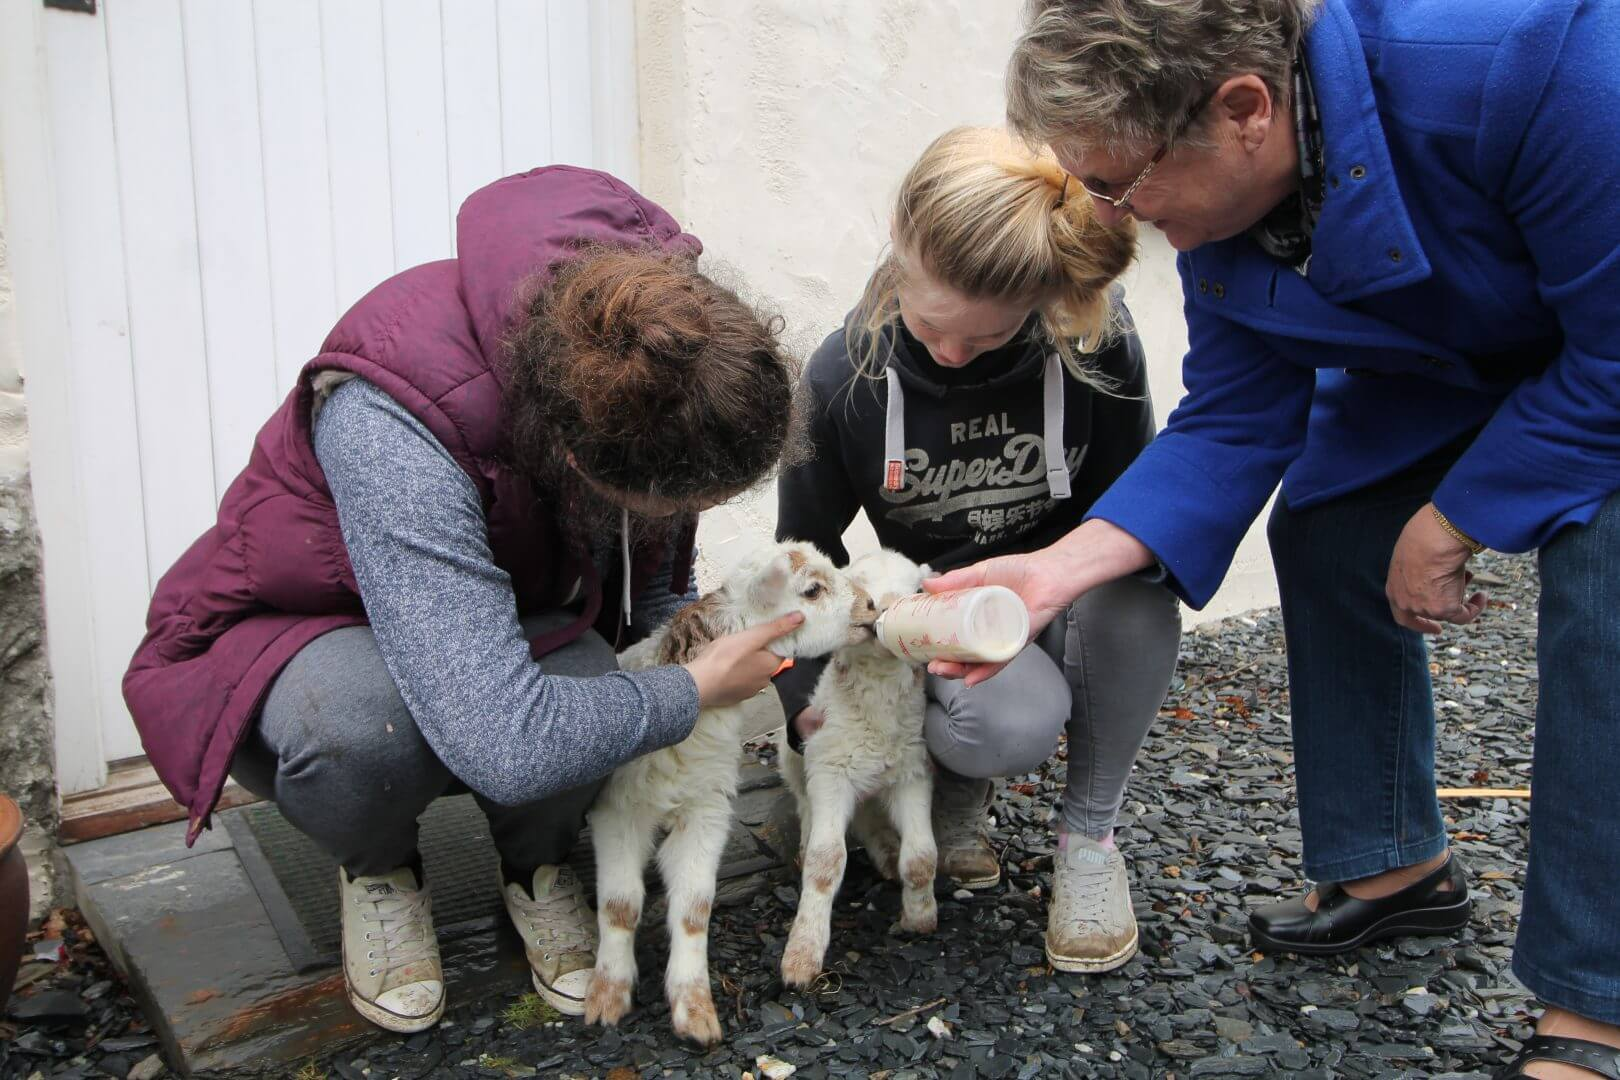 Experience agriculture at Maentwrong Bunkhouse in Snowdonia - a true Welsh farming expereince